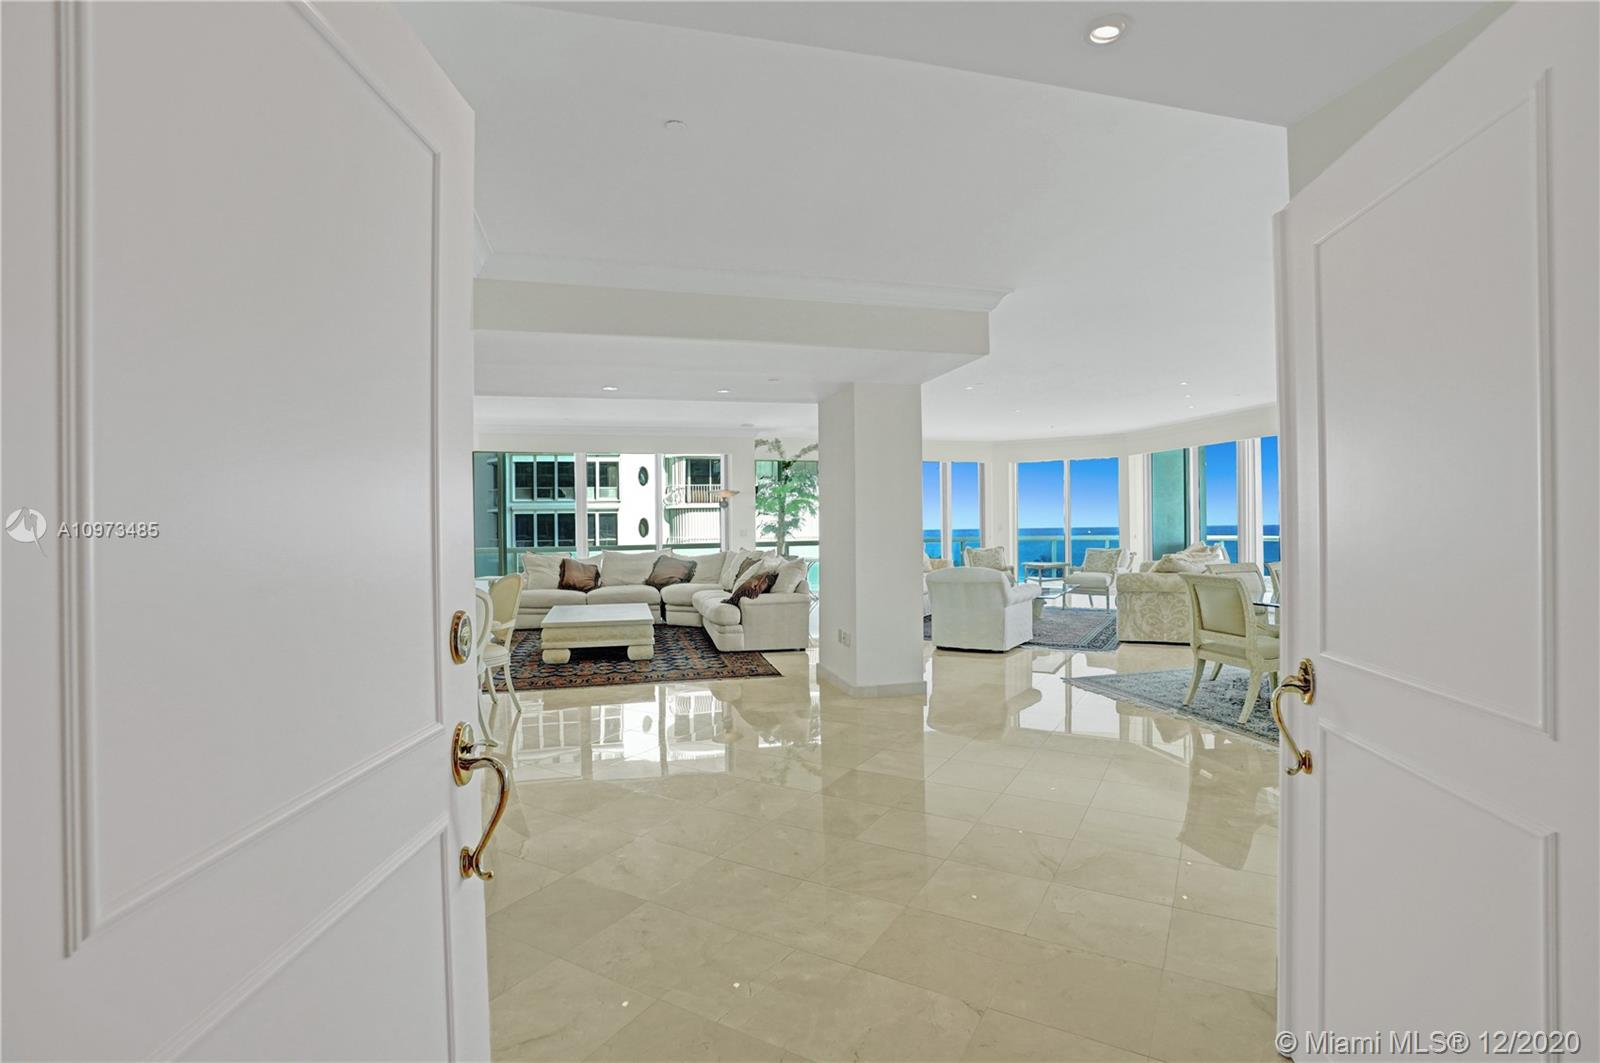 The property has been rented for 1 year Starting Feb. 14th, 2021.Fabulous oversized apartment at The Palace in the heart of Bal Harbour. Minutes from Harding Ave, where you can find any restaurant to satisfy your appetite, shops, and homes of worship. Steps away are the famous Bal Harbour Shops, and just down the street is Kane Concourse. OF COURSE, the beach is just a breath away. This spacious residence has been freshly painted and left ready to move in. Magnificent views of the ocean will wake you up in the mornings and greet you when you come home from your daily routine. The Palace offers incredible amenities: Poolside and dining restaurant, spa, gym, tennis court, card room, party room, and more. Whatever your needs, you will find them here. Three Bedroom Plus Housekeeper quarters.